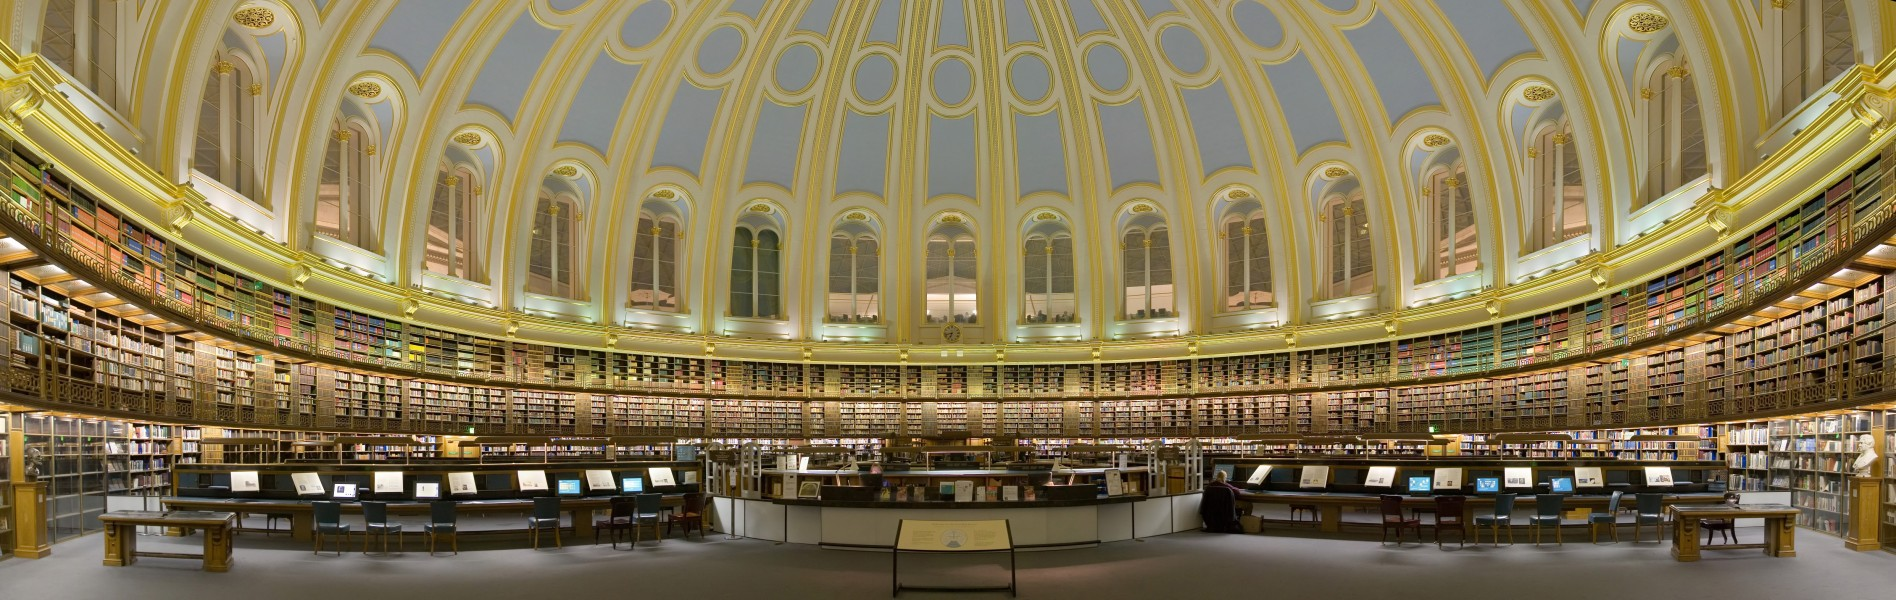 British Museum Reading Room Panorama Feb 2006 edit1